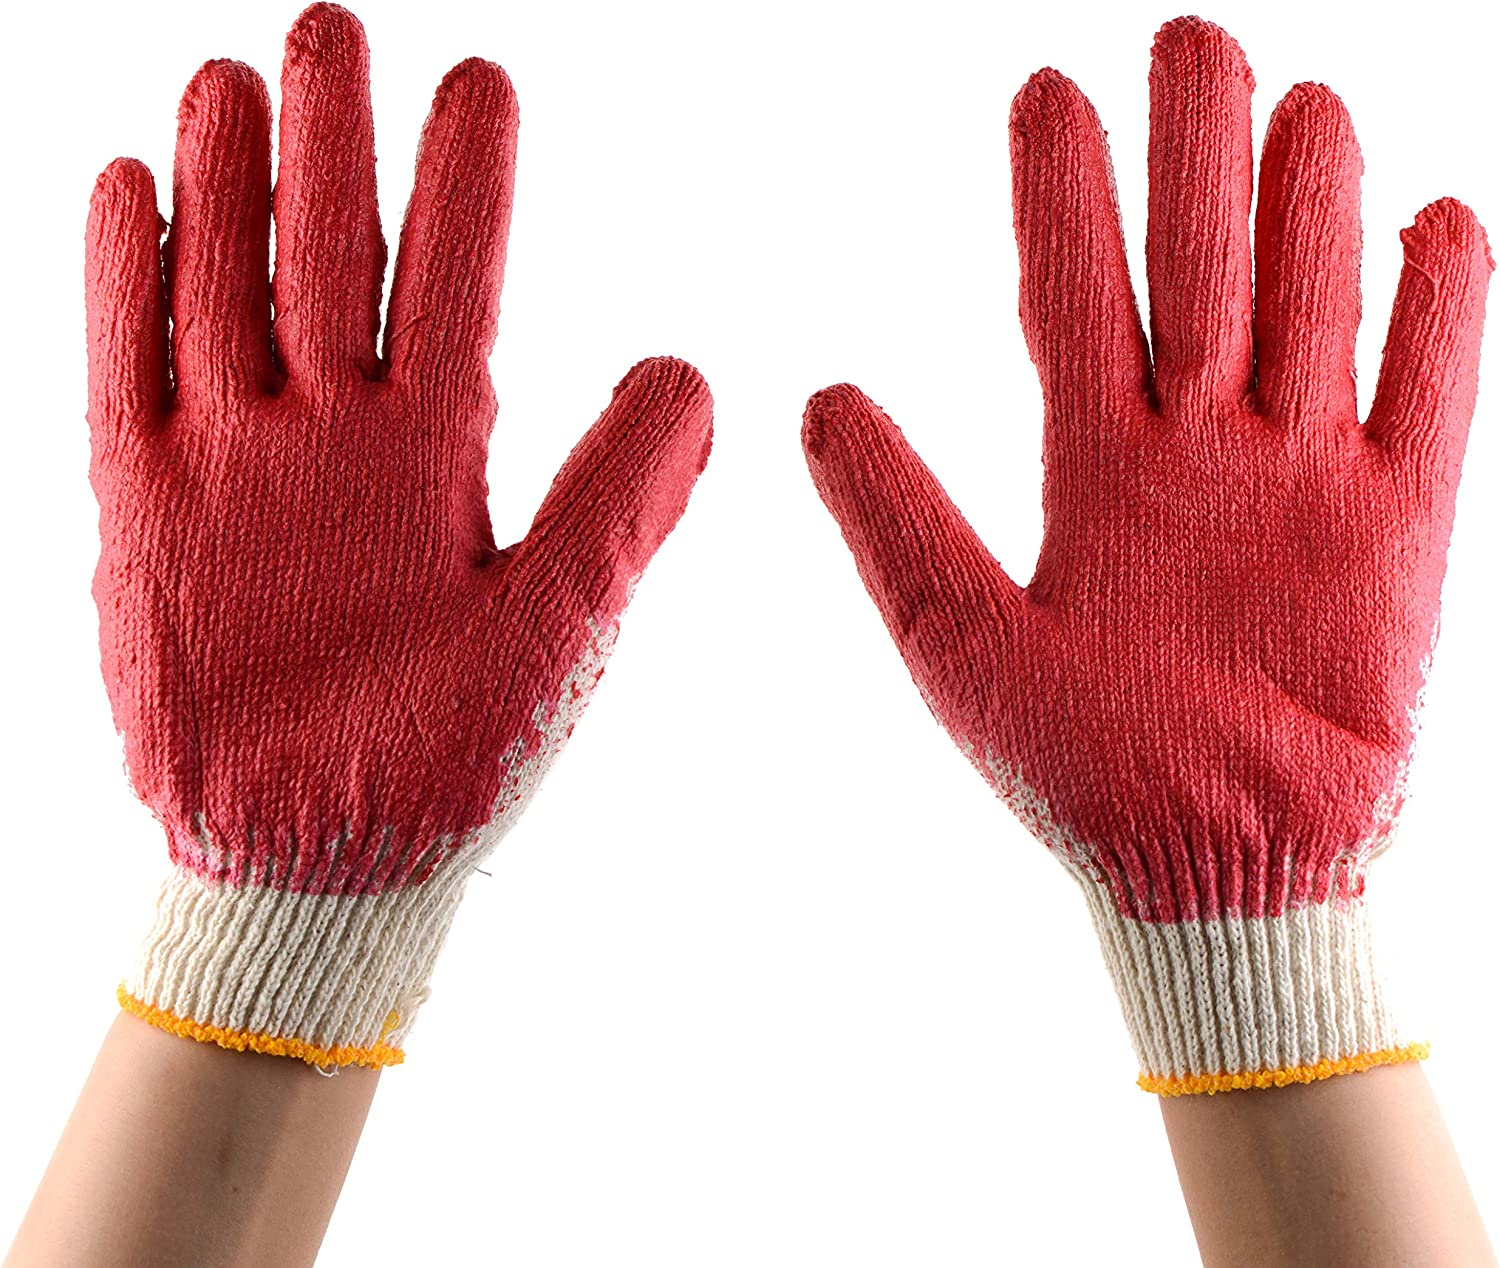 300 Pairs - Phoenix Mall Red Latex Coated Super popular specialty store MEDIUM EcoQ by Gloves Cotton Work